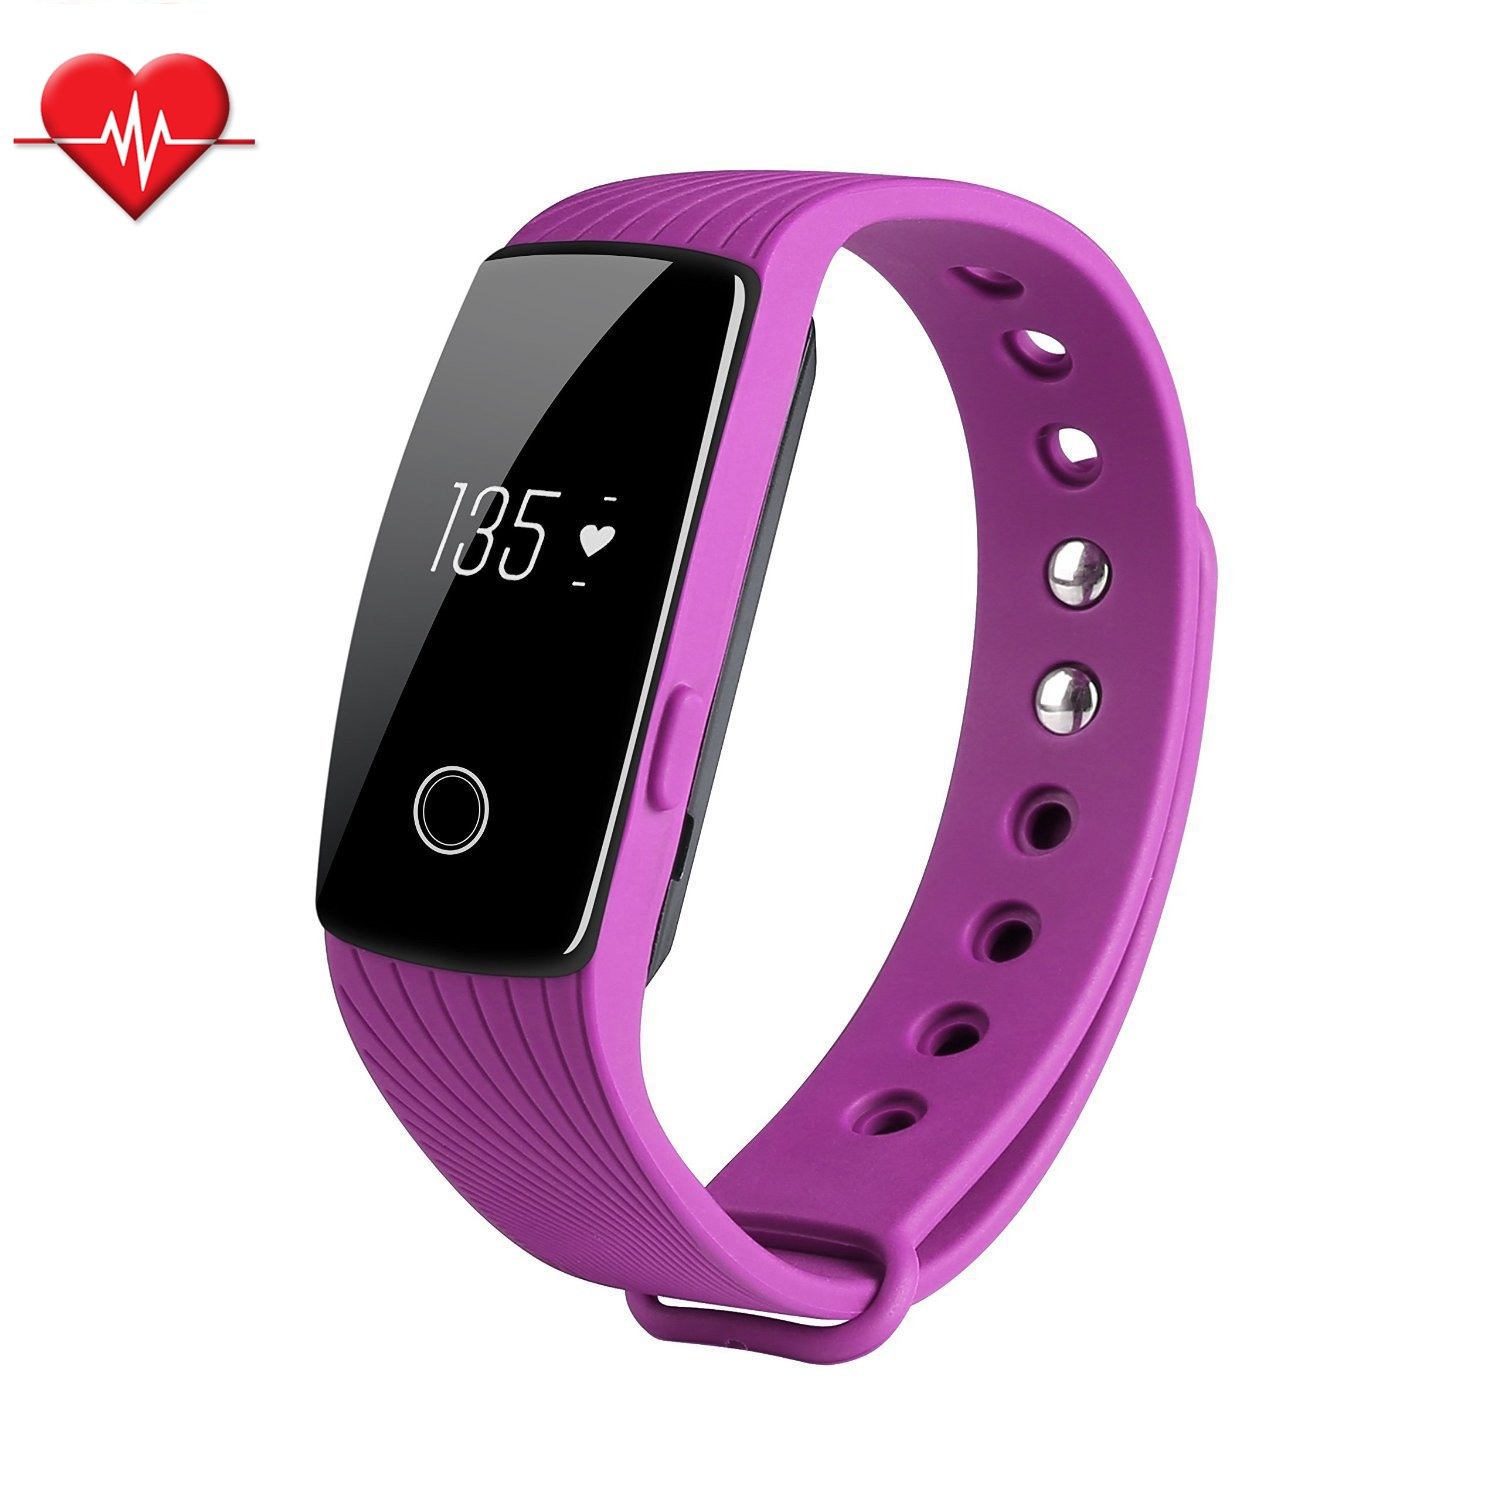 wristbands activity pedometer fitness for ios rate tracker smart item bracelet harefn wristband android newest watch in bluetooth sports band watches from monitor heart